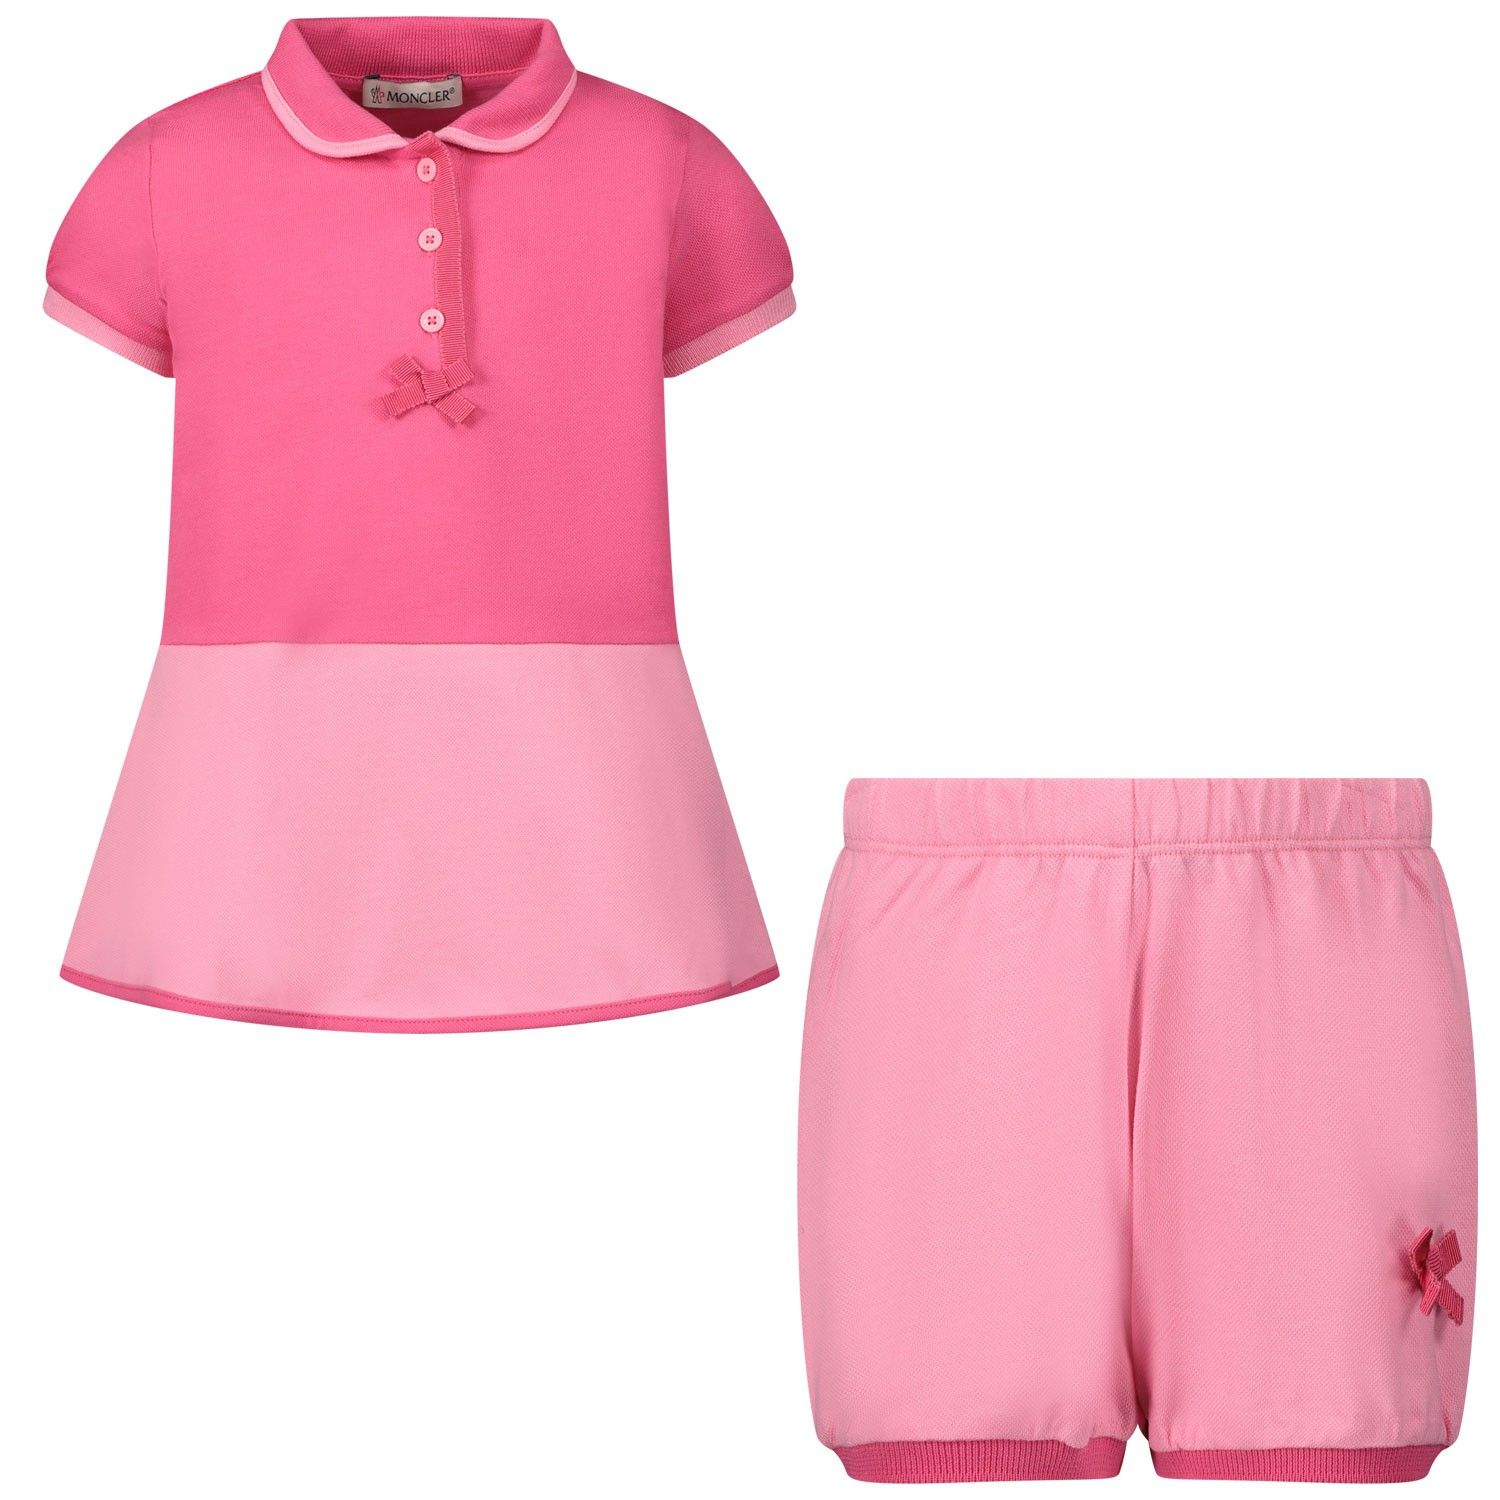 Picture of Moncler 8I70010 baby set pink